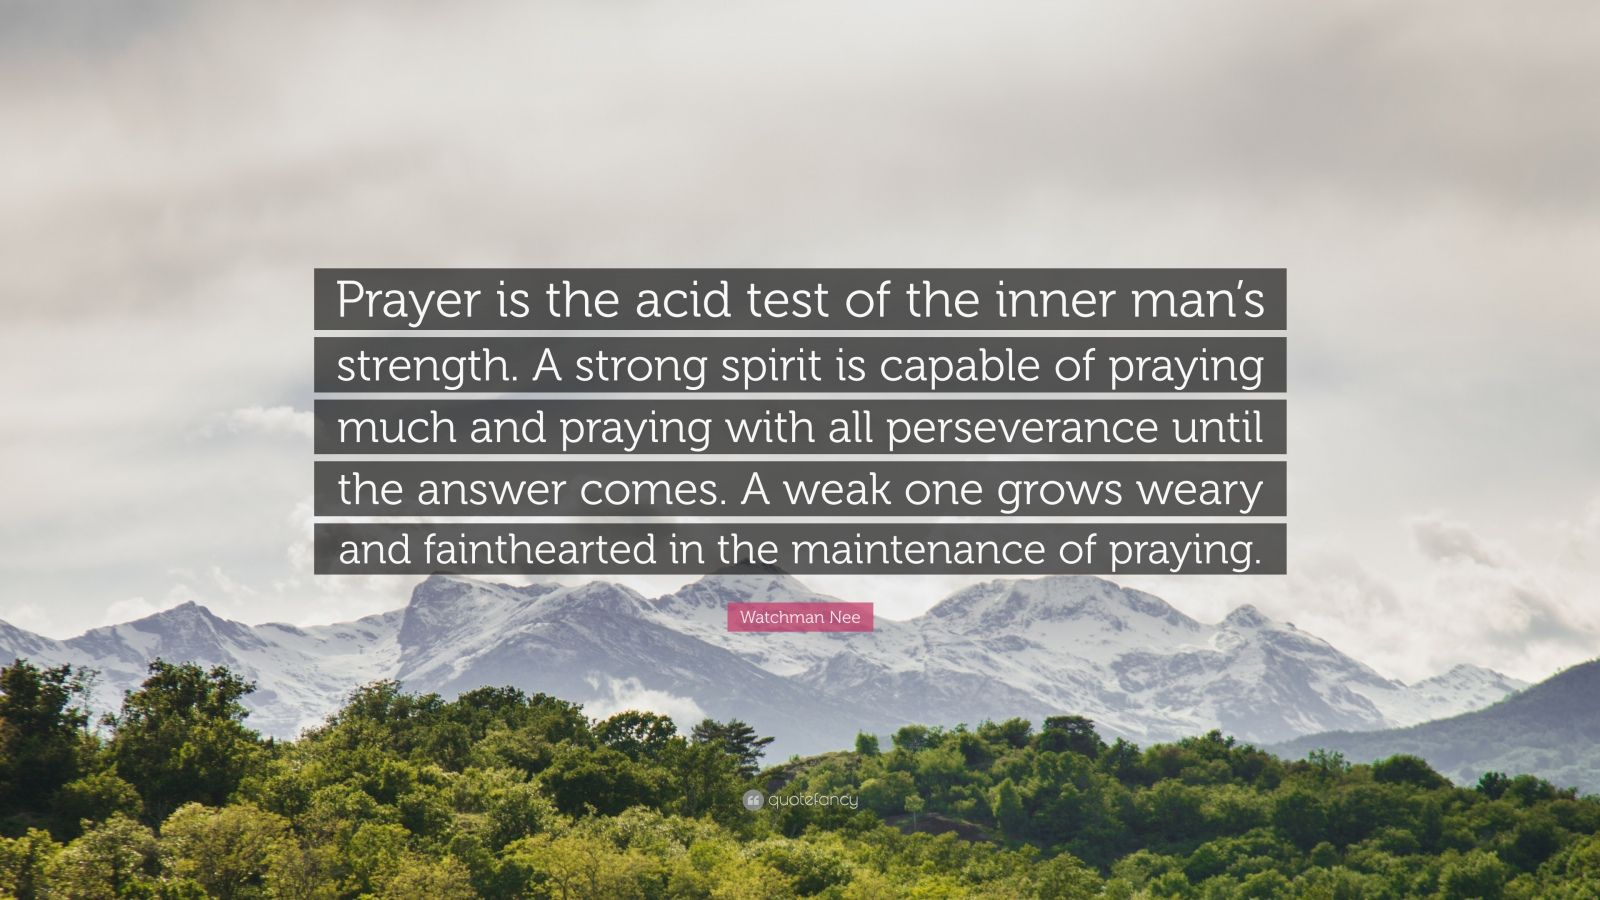 """Watchman Nee Quote: """"Prayer is the acid test of the inner man's strength. A strong spirit is capable of praying much and praying with all perseverance until the answer comes. A weak one grows weary and fainthearted in the maintenance of praying."""""""